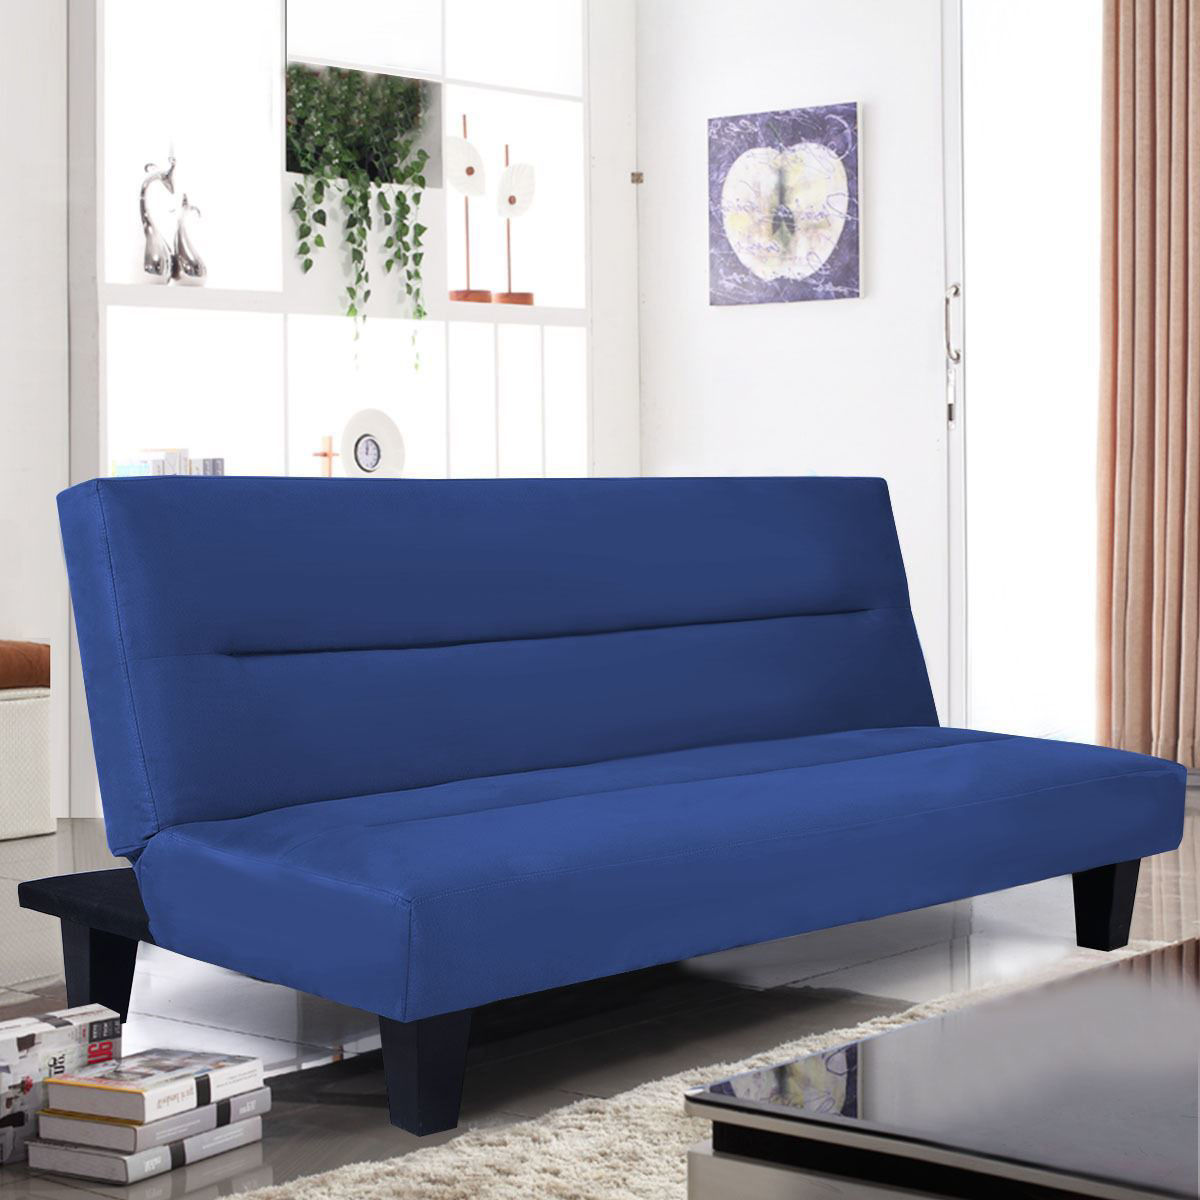 "Picture of Recliner Lounger Microfiber Futon Folding Couch Sofa Bed 6"" Mattress Sleep Blue"